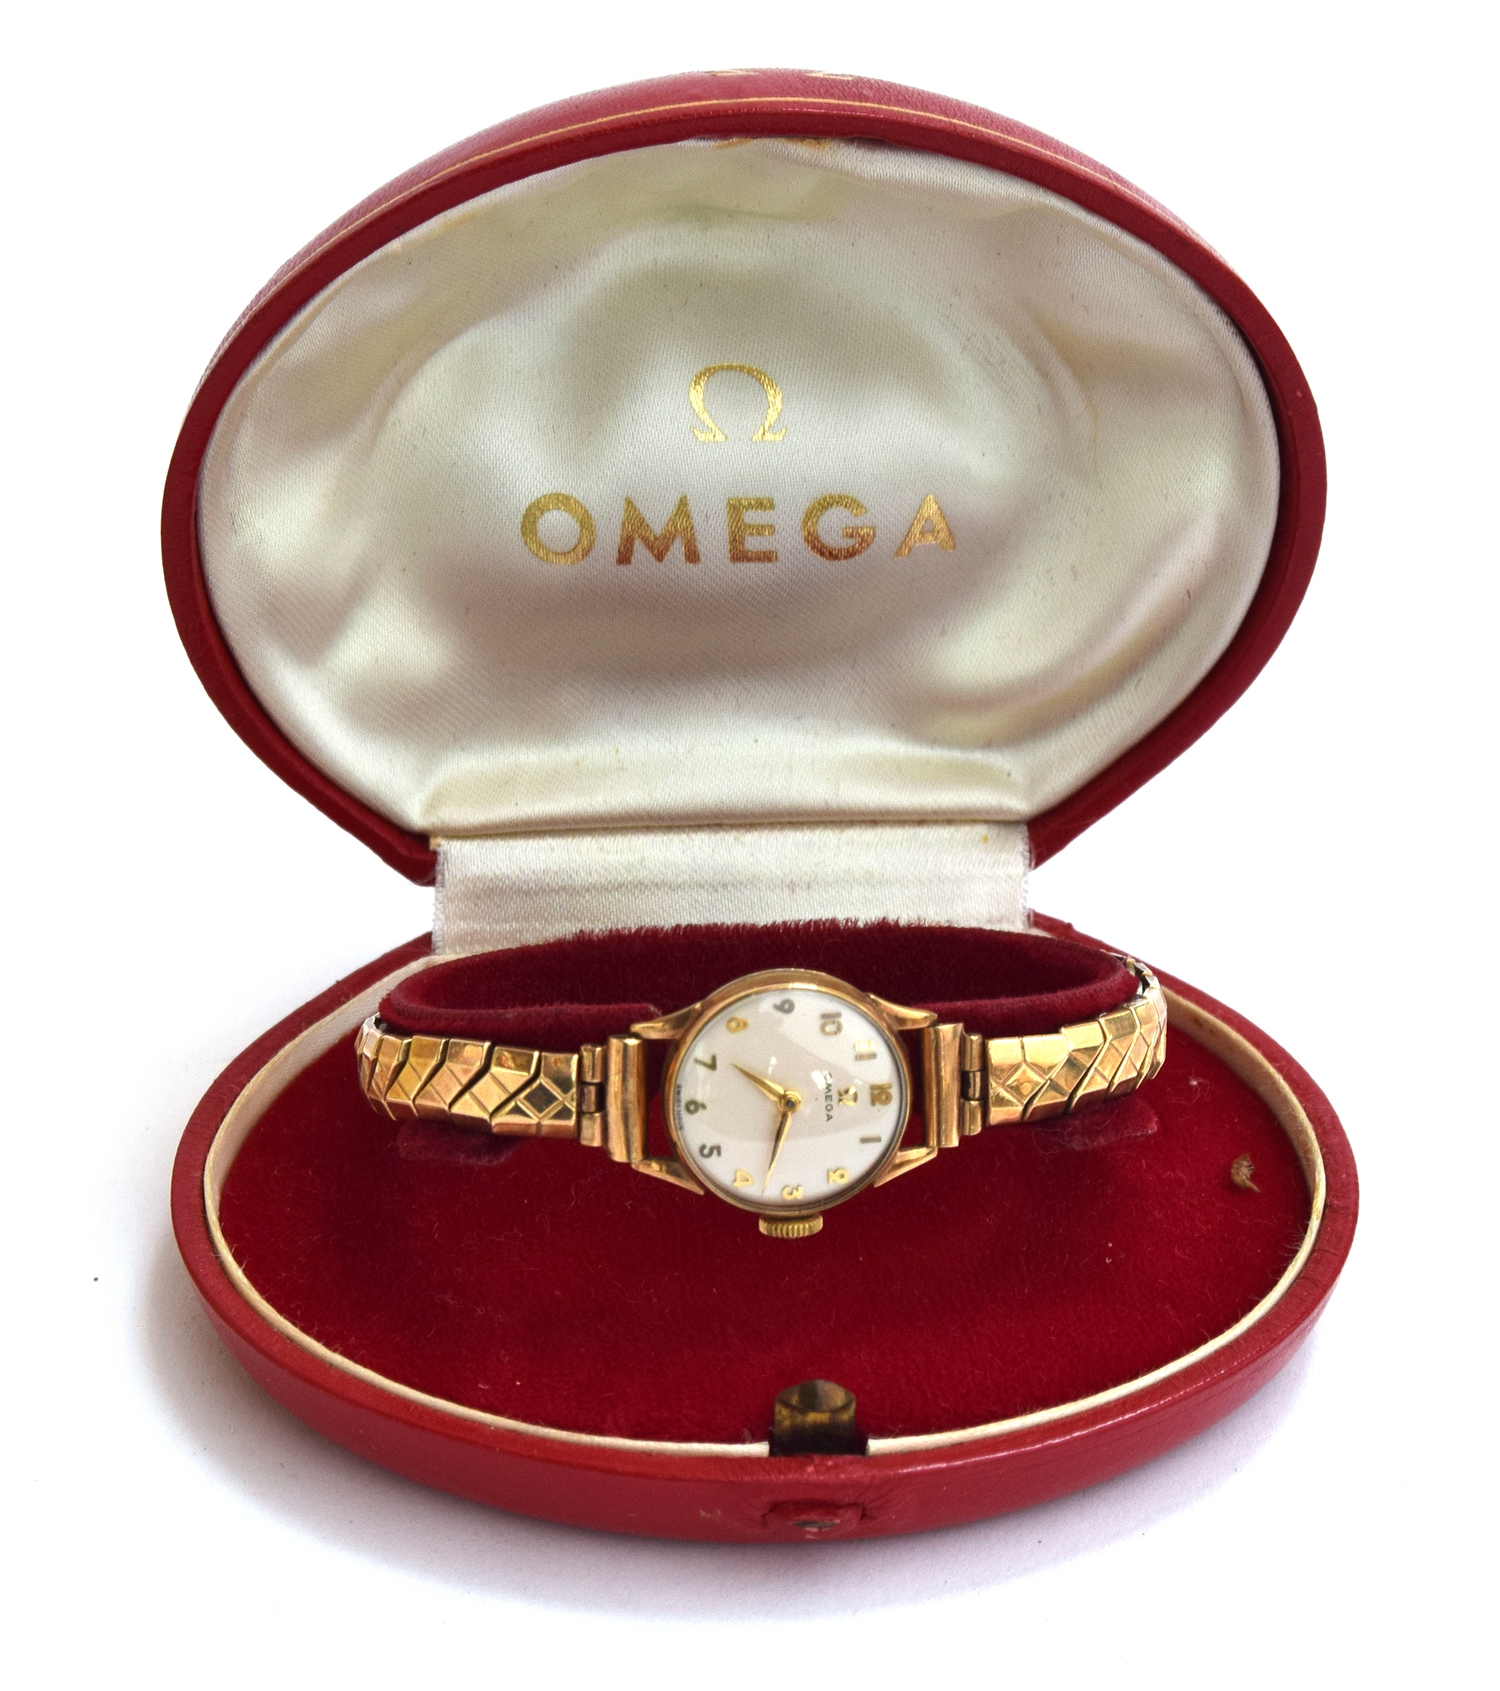 A ladies gold Omega watch on yellow metal bracelet. In original box and with paperwork